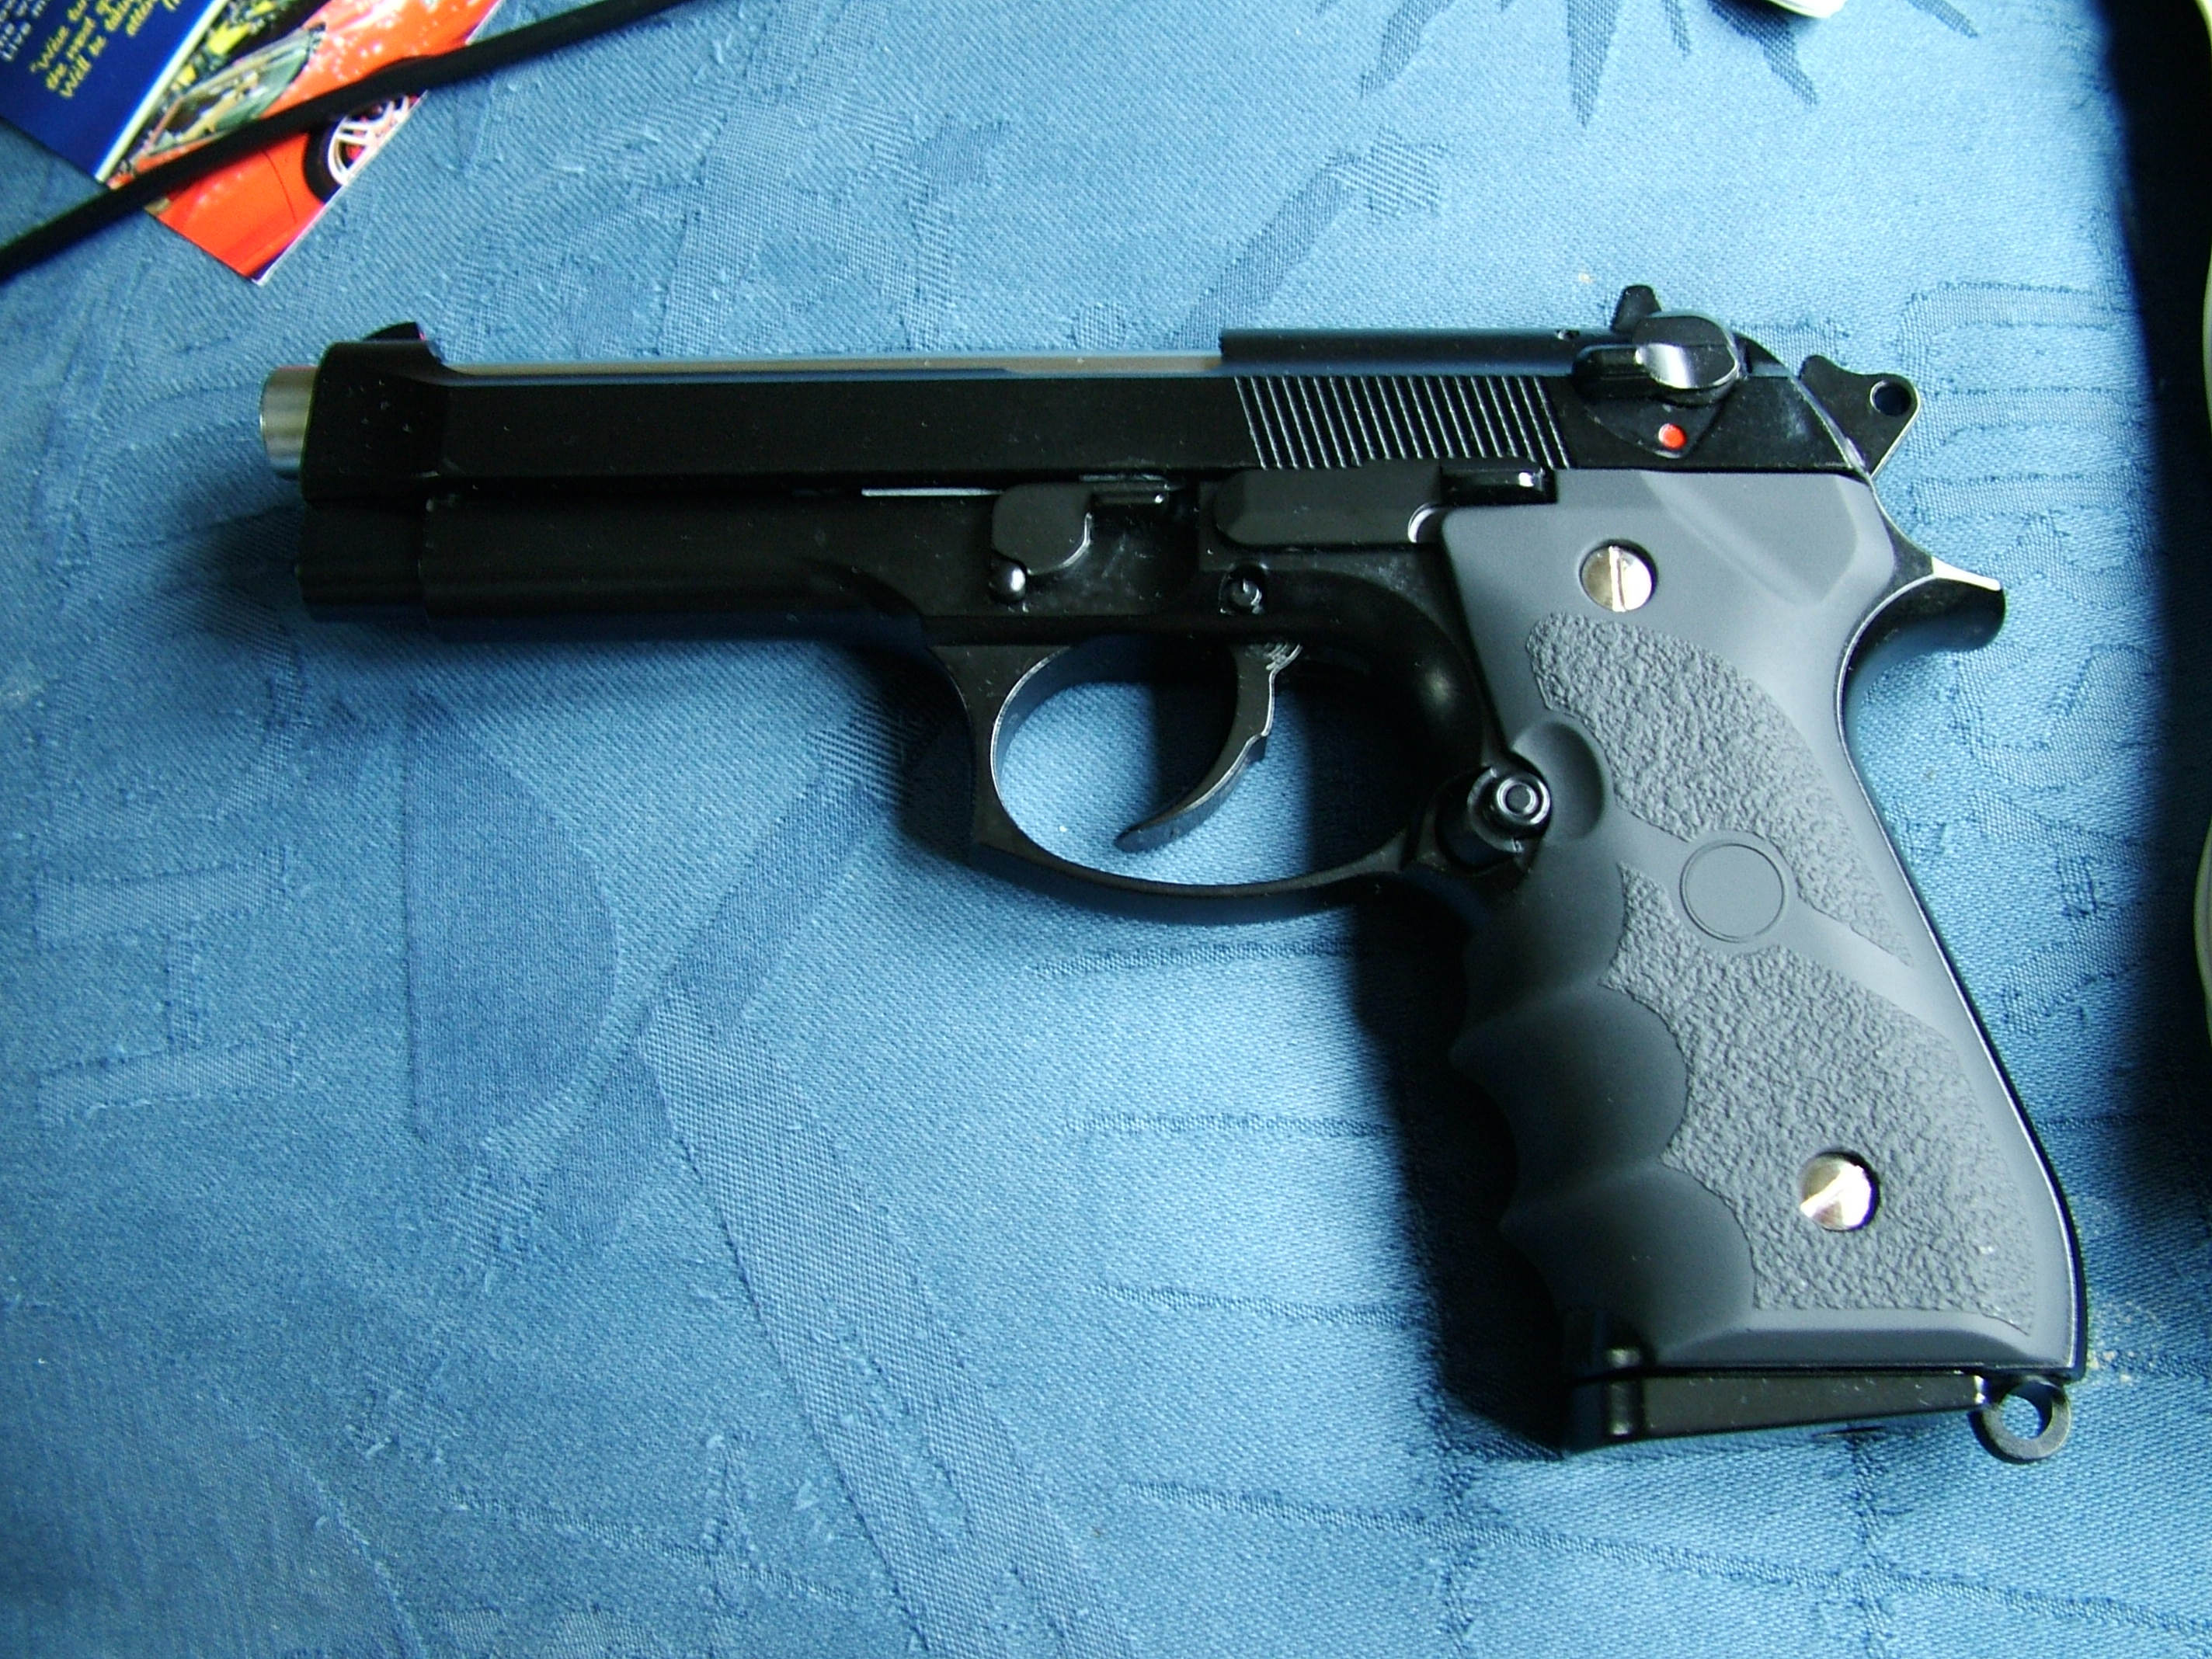 Picture of Re-assembling the Gun.